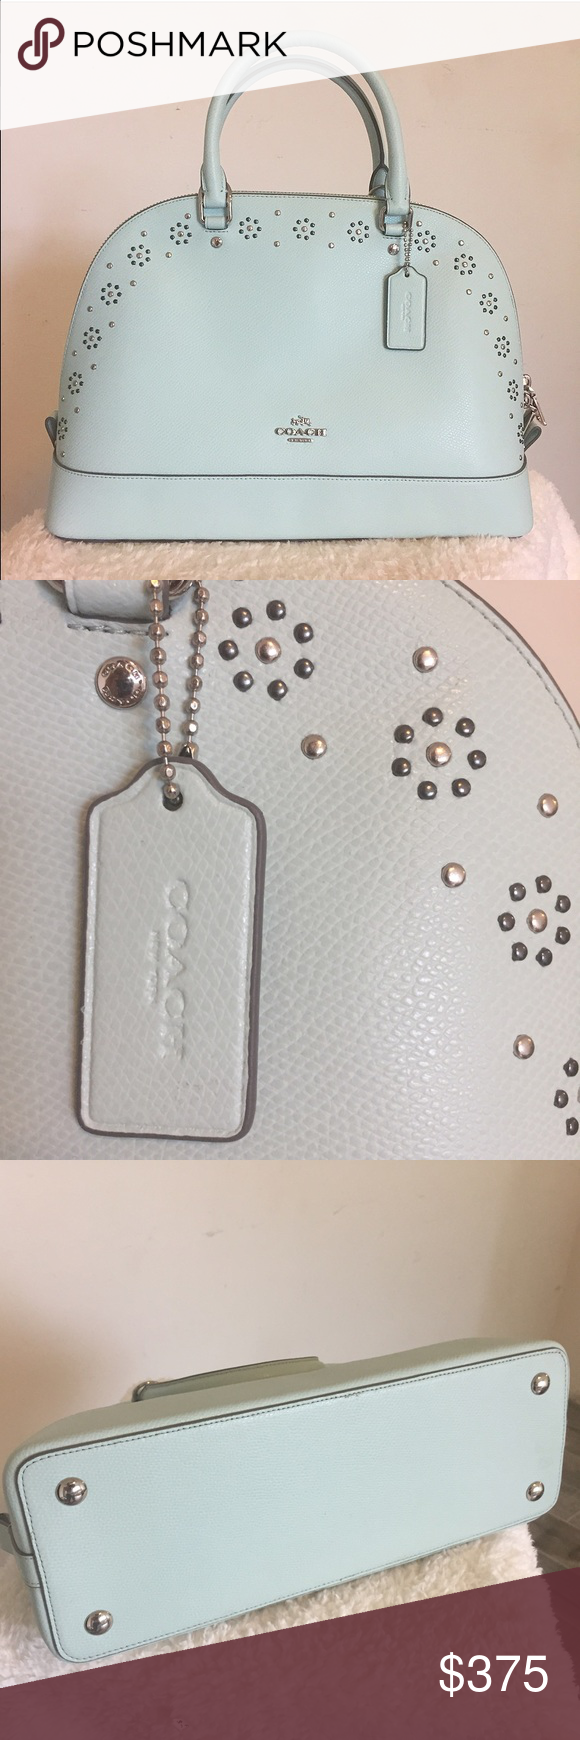 NWT: 💋Last Day💋 COACH Border Mint Green Bag Flat bottom, structured, mint green Coach tote/cross body bag. Bordered with gun metal and silver studs. Never been carried, tag and care instructions included. Coach Bags Satchels